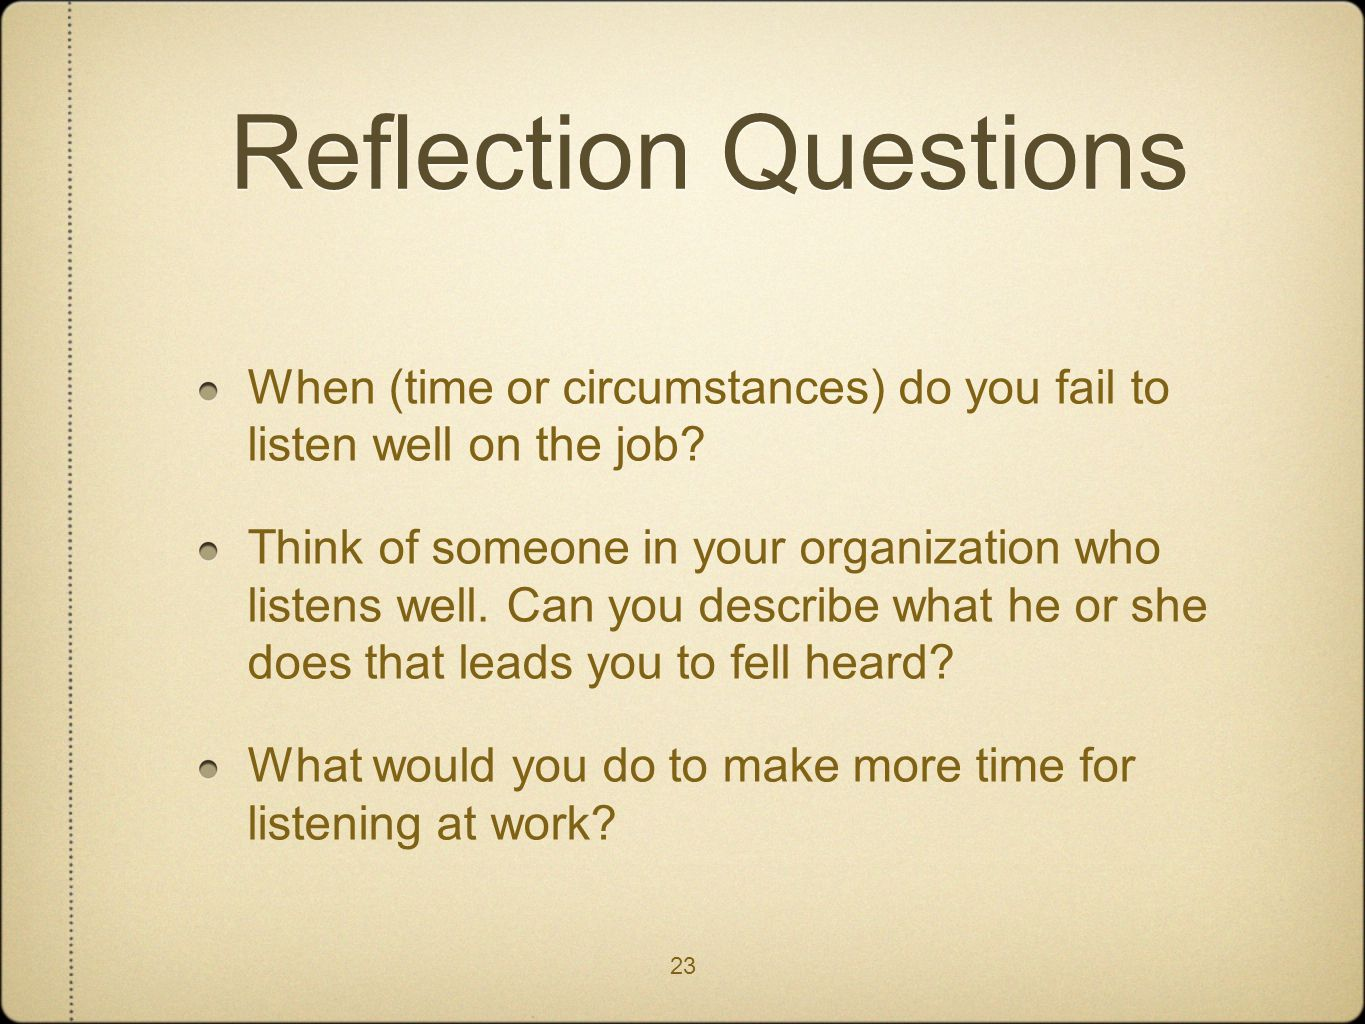 23 Reflection Questions When (time or circumstances) do you fail to listen well on the job? Think of someone in your organization who listens well. Ca